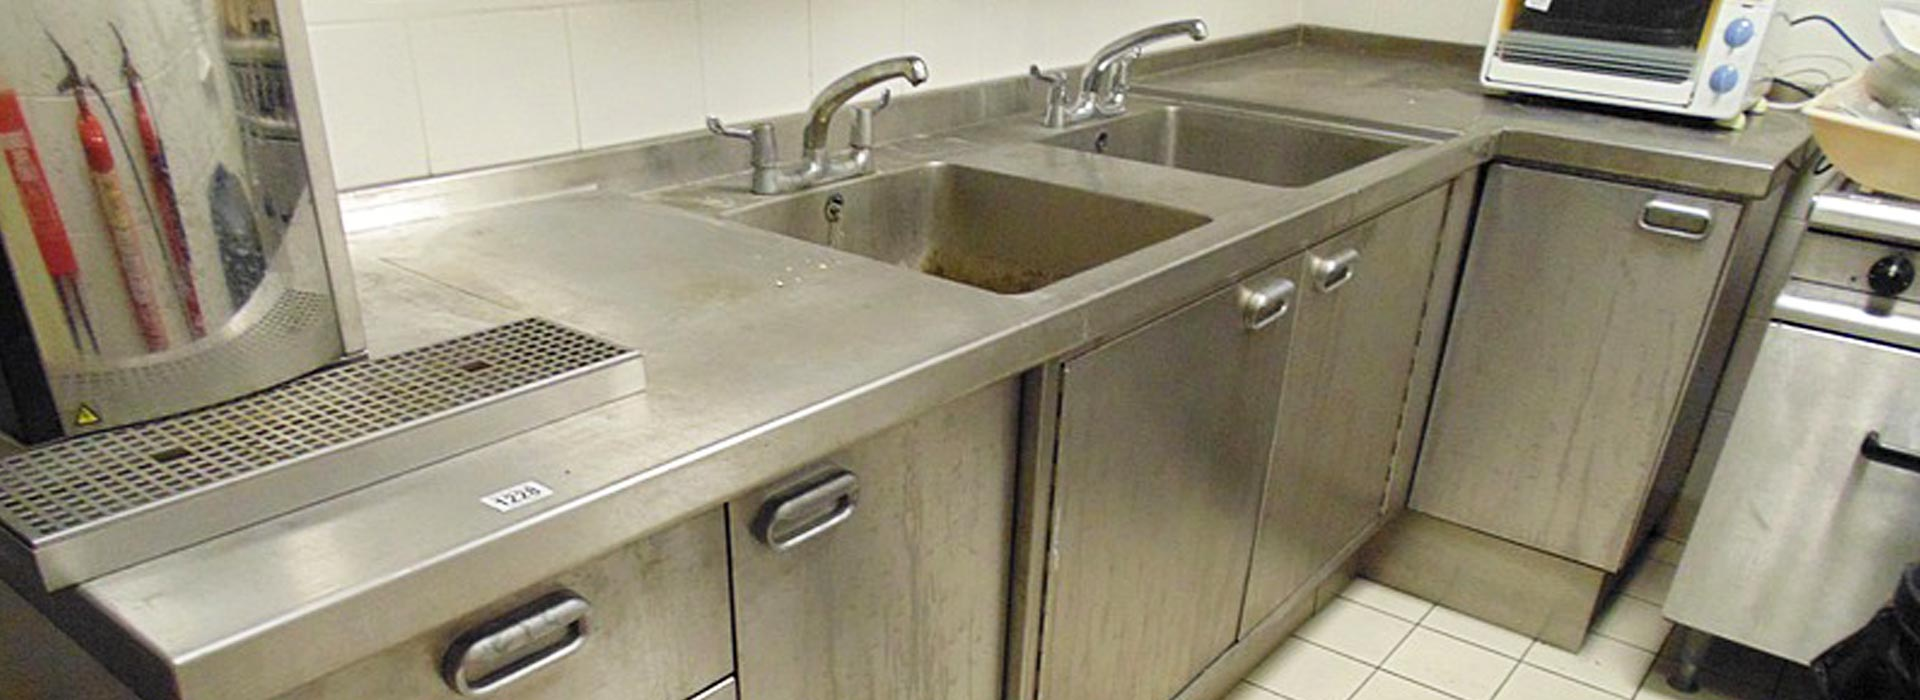 Stainless Steel Sink Units, Stainless Steel Sink Units In Kolkata